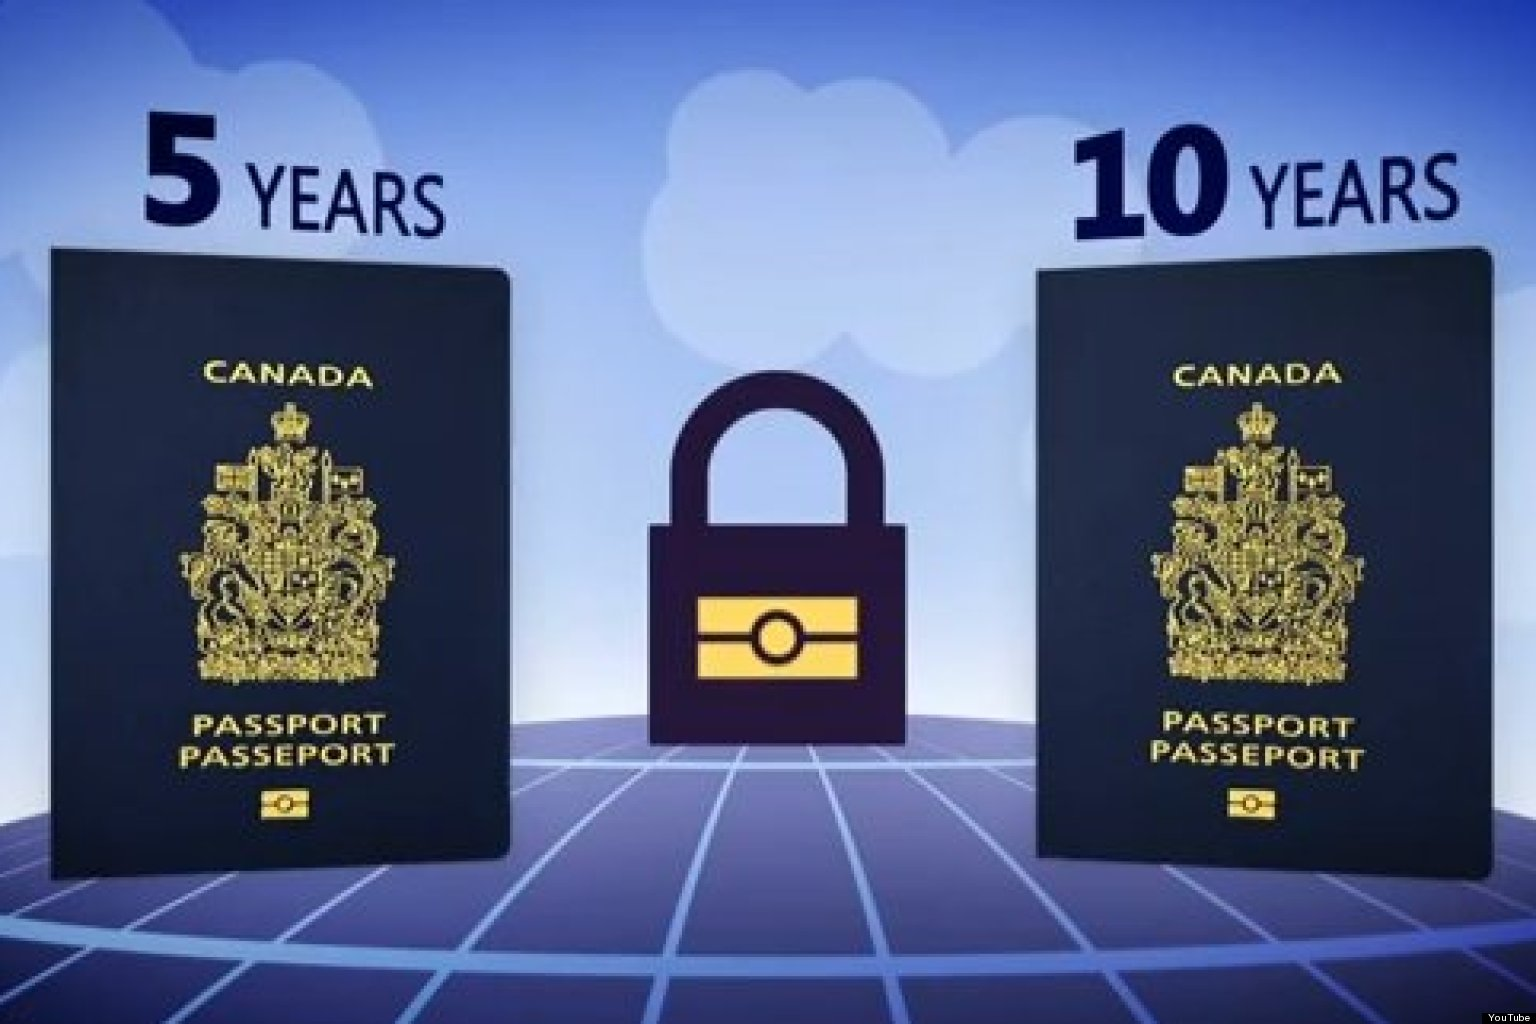 Canada passport office - Where to apply for your Canada passport